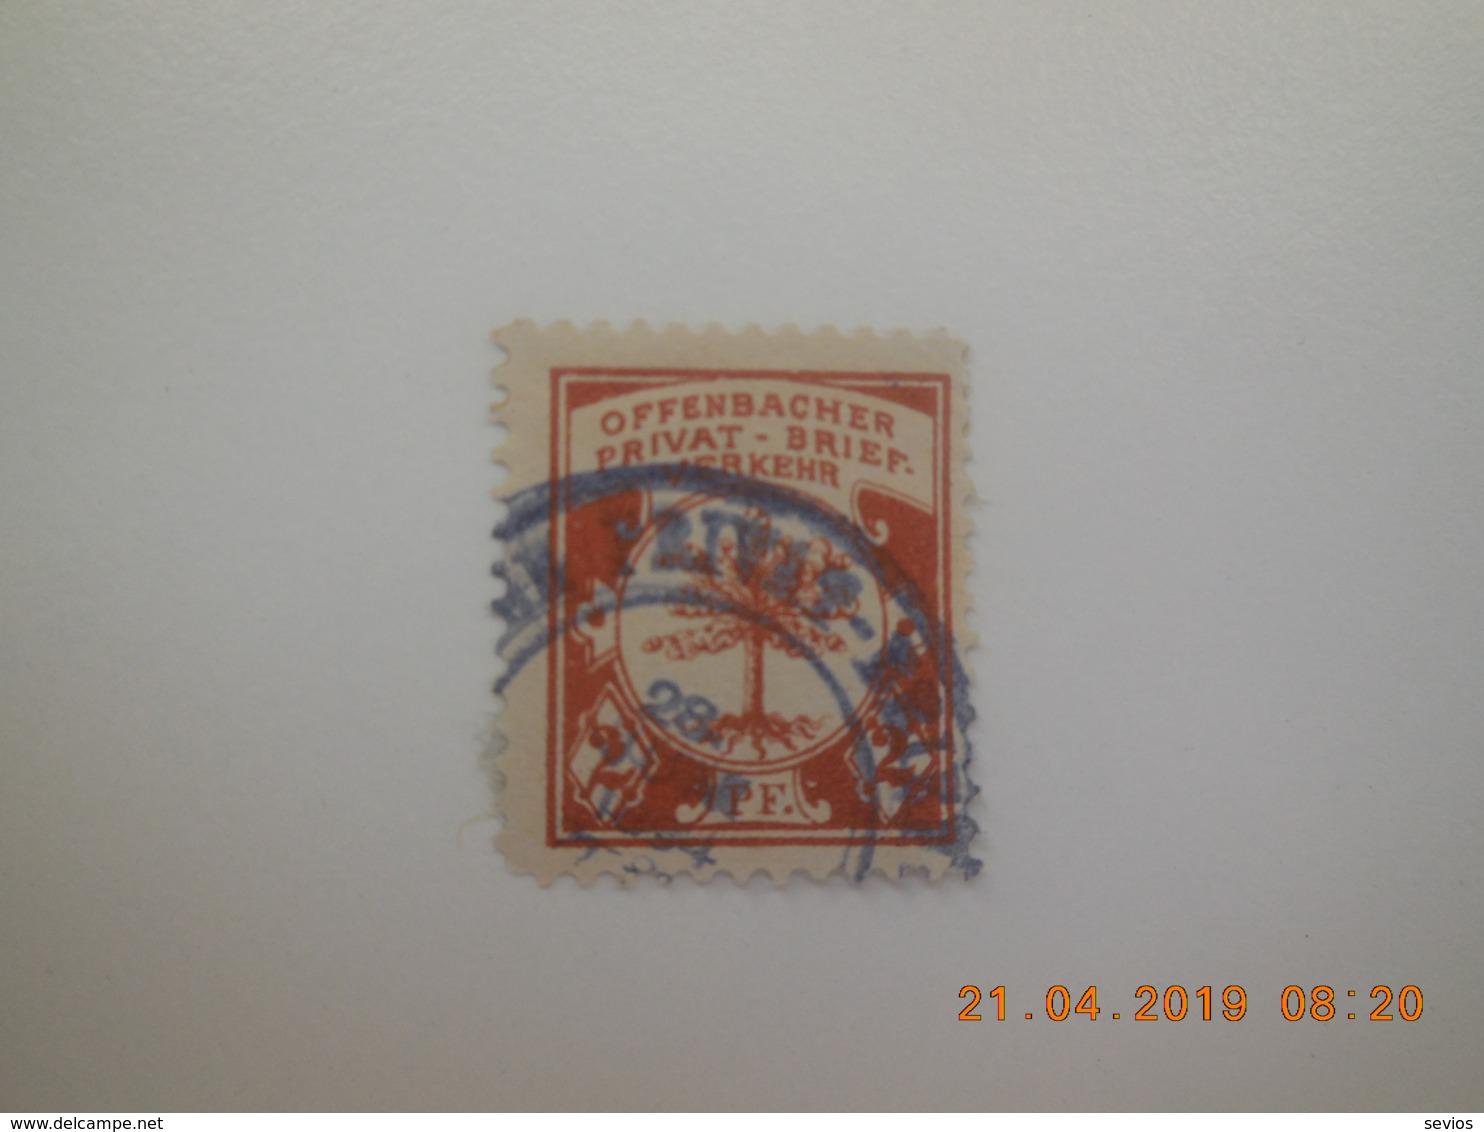 Sevios / Duitsland Private Or Stadtpost / **, *, (*) Or Used - Zonder Classificatie